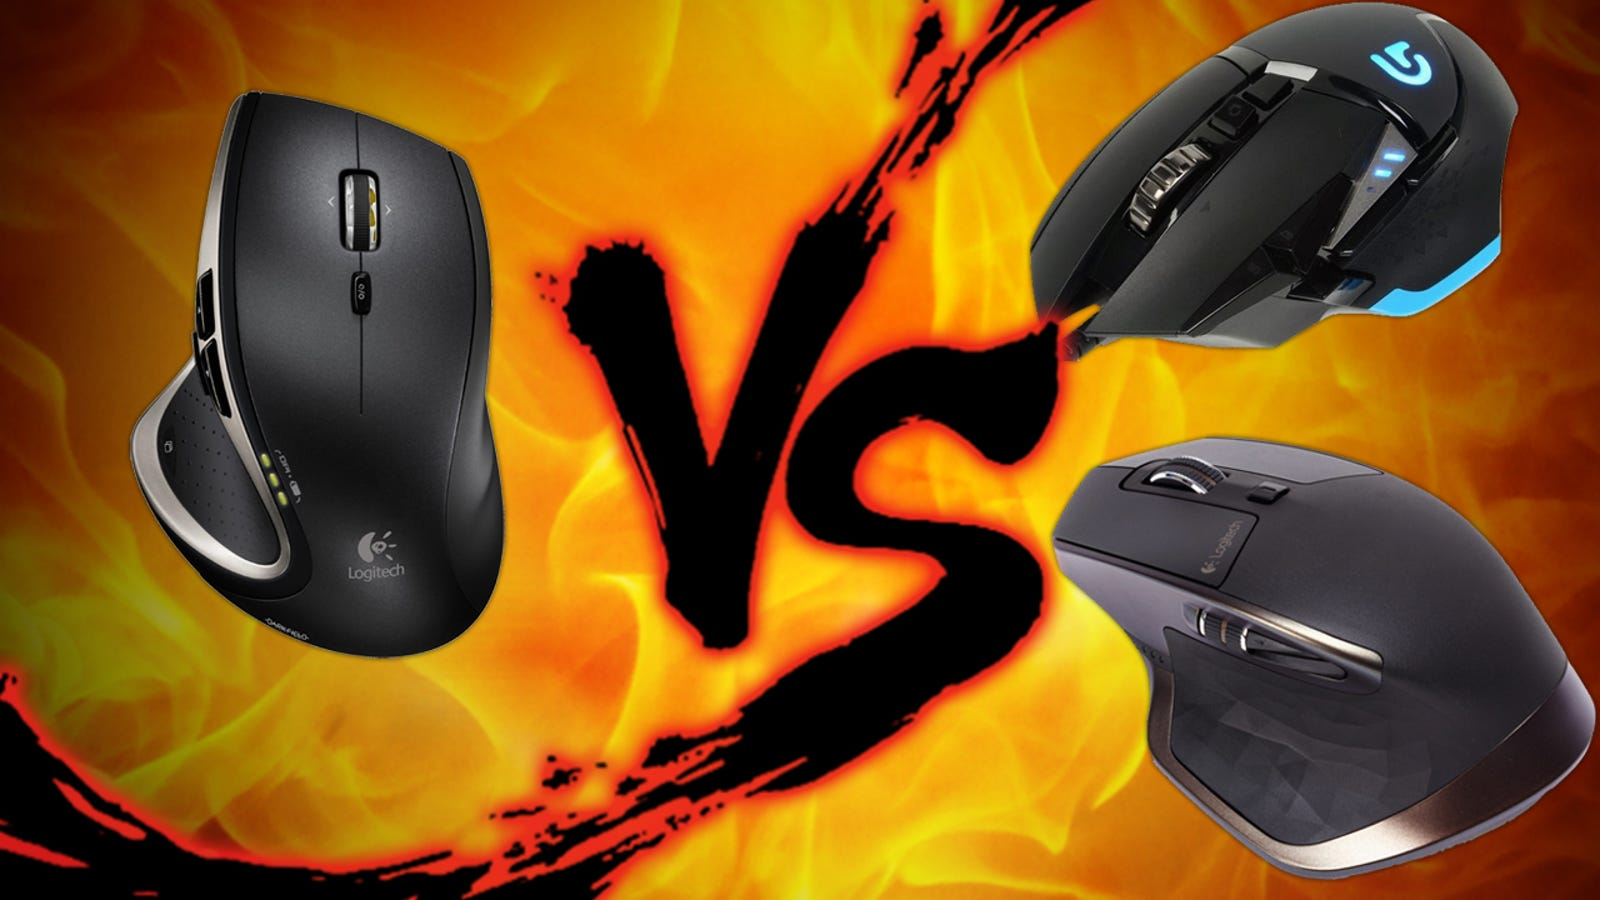 Logitech Mouse Showdown: Performance MX vs  MX Master vs